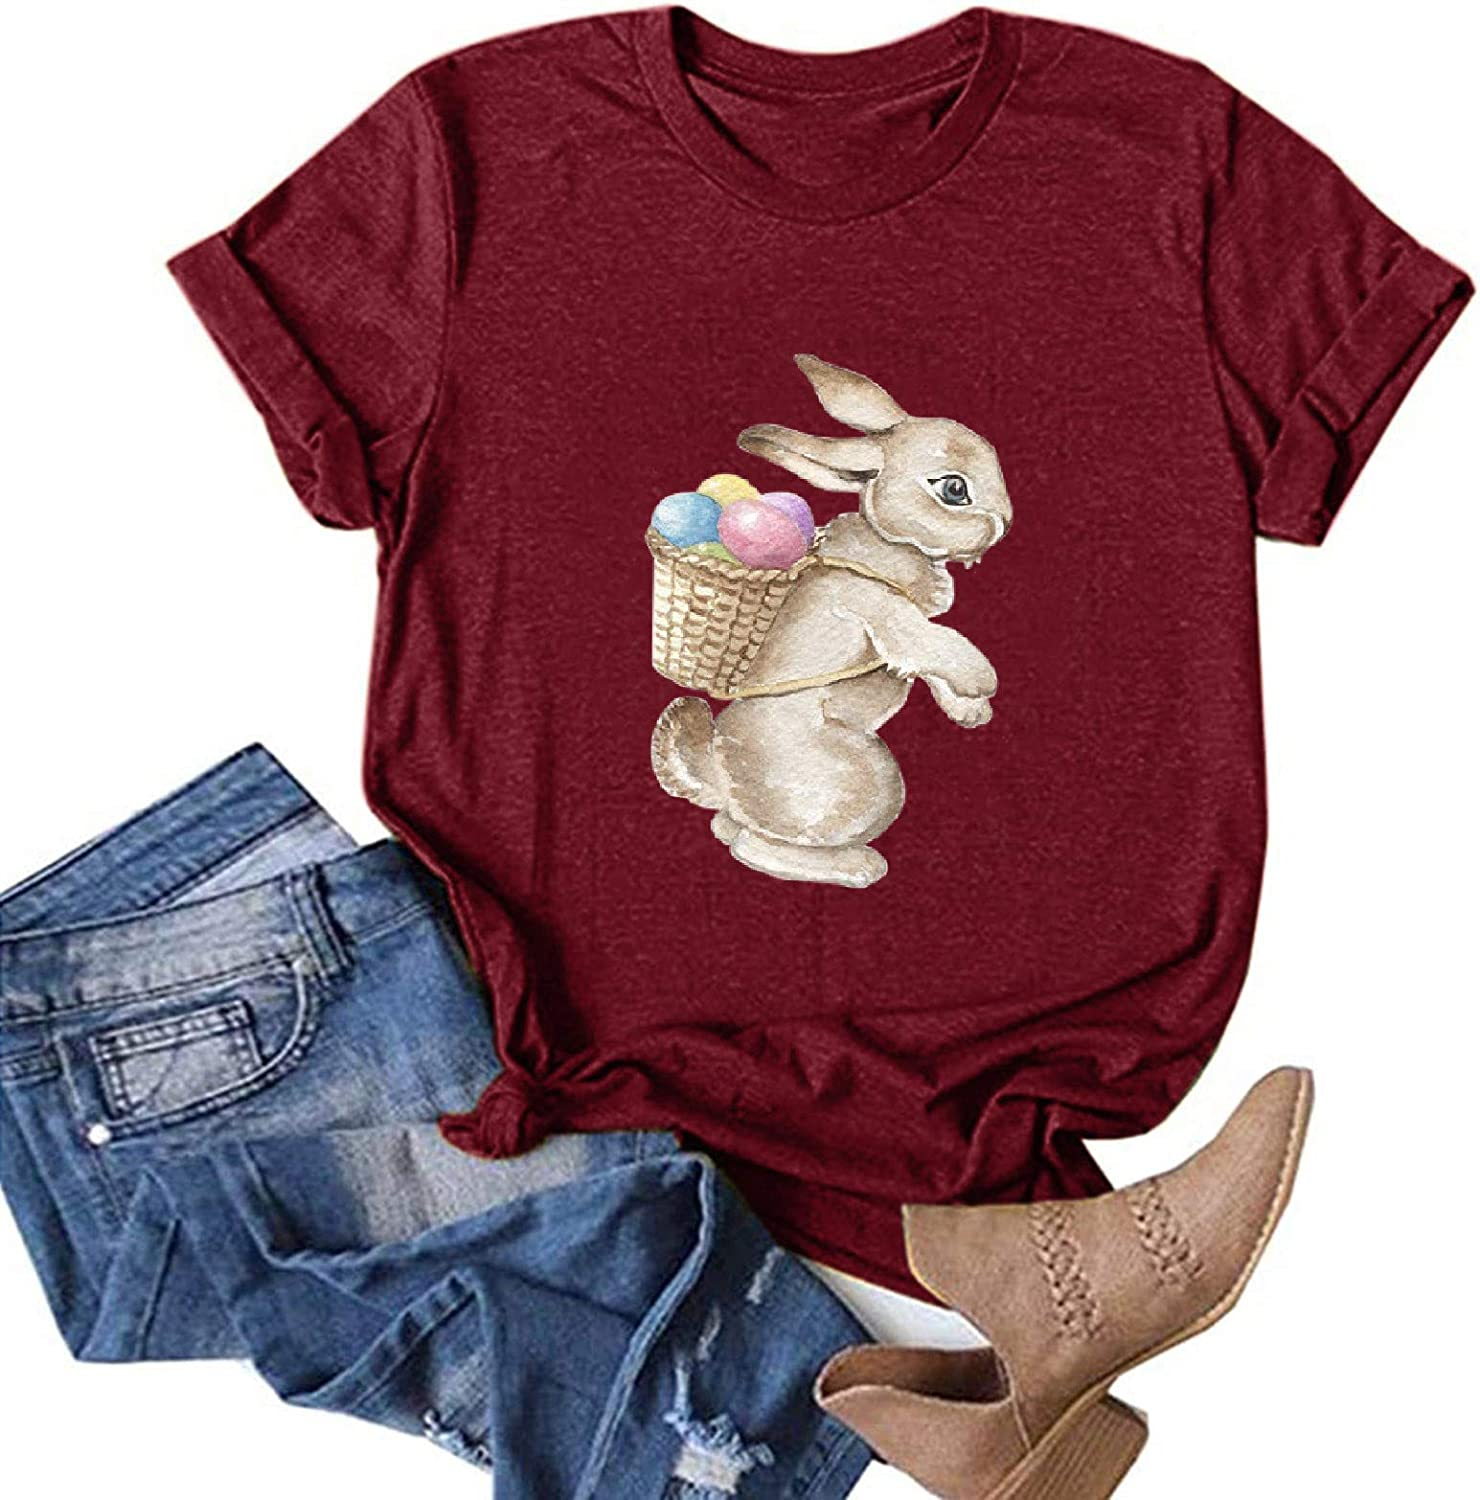 Tshirts for Womens,Women's Easter T Shirts Casual Summer Tops with Flowy Sleeve